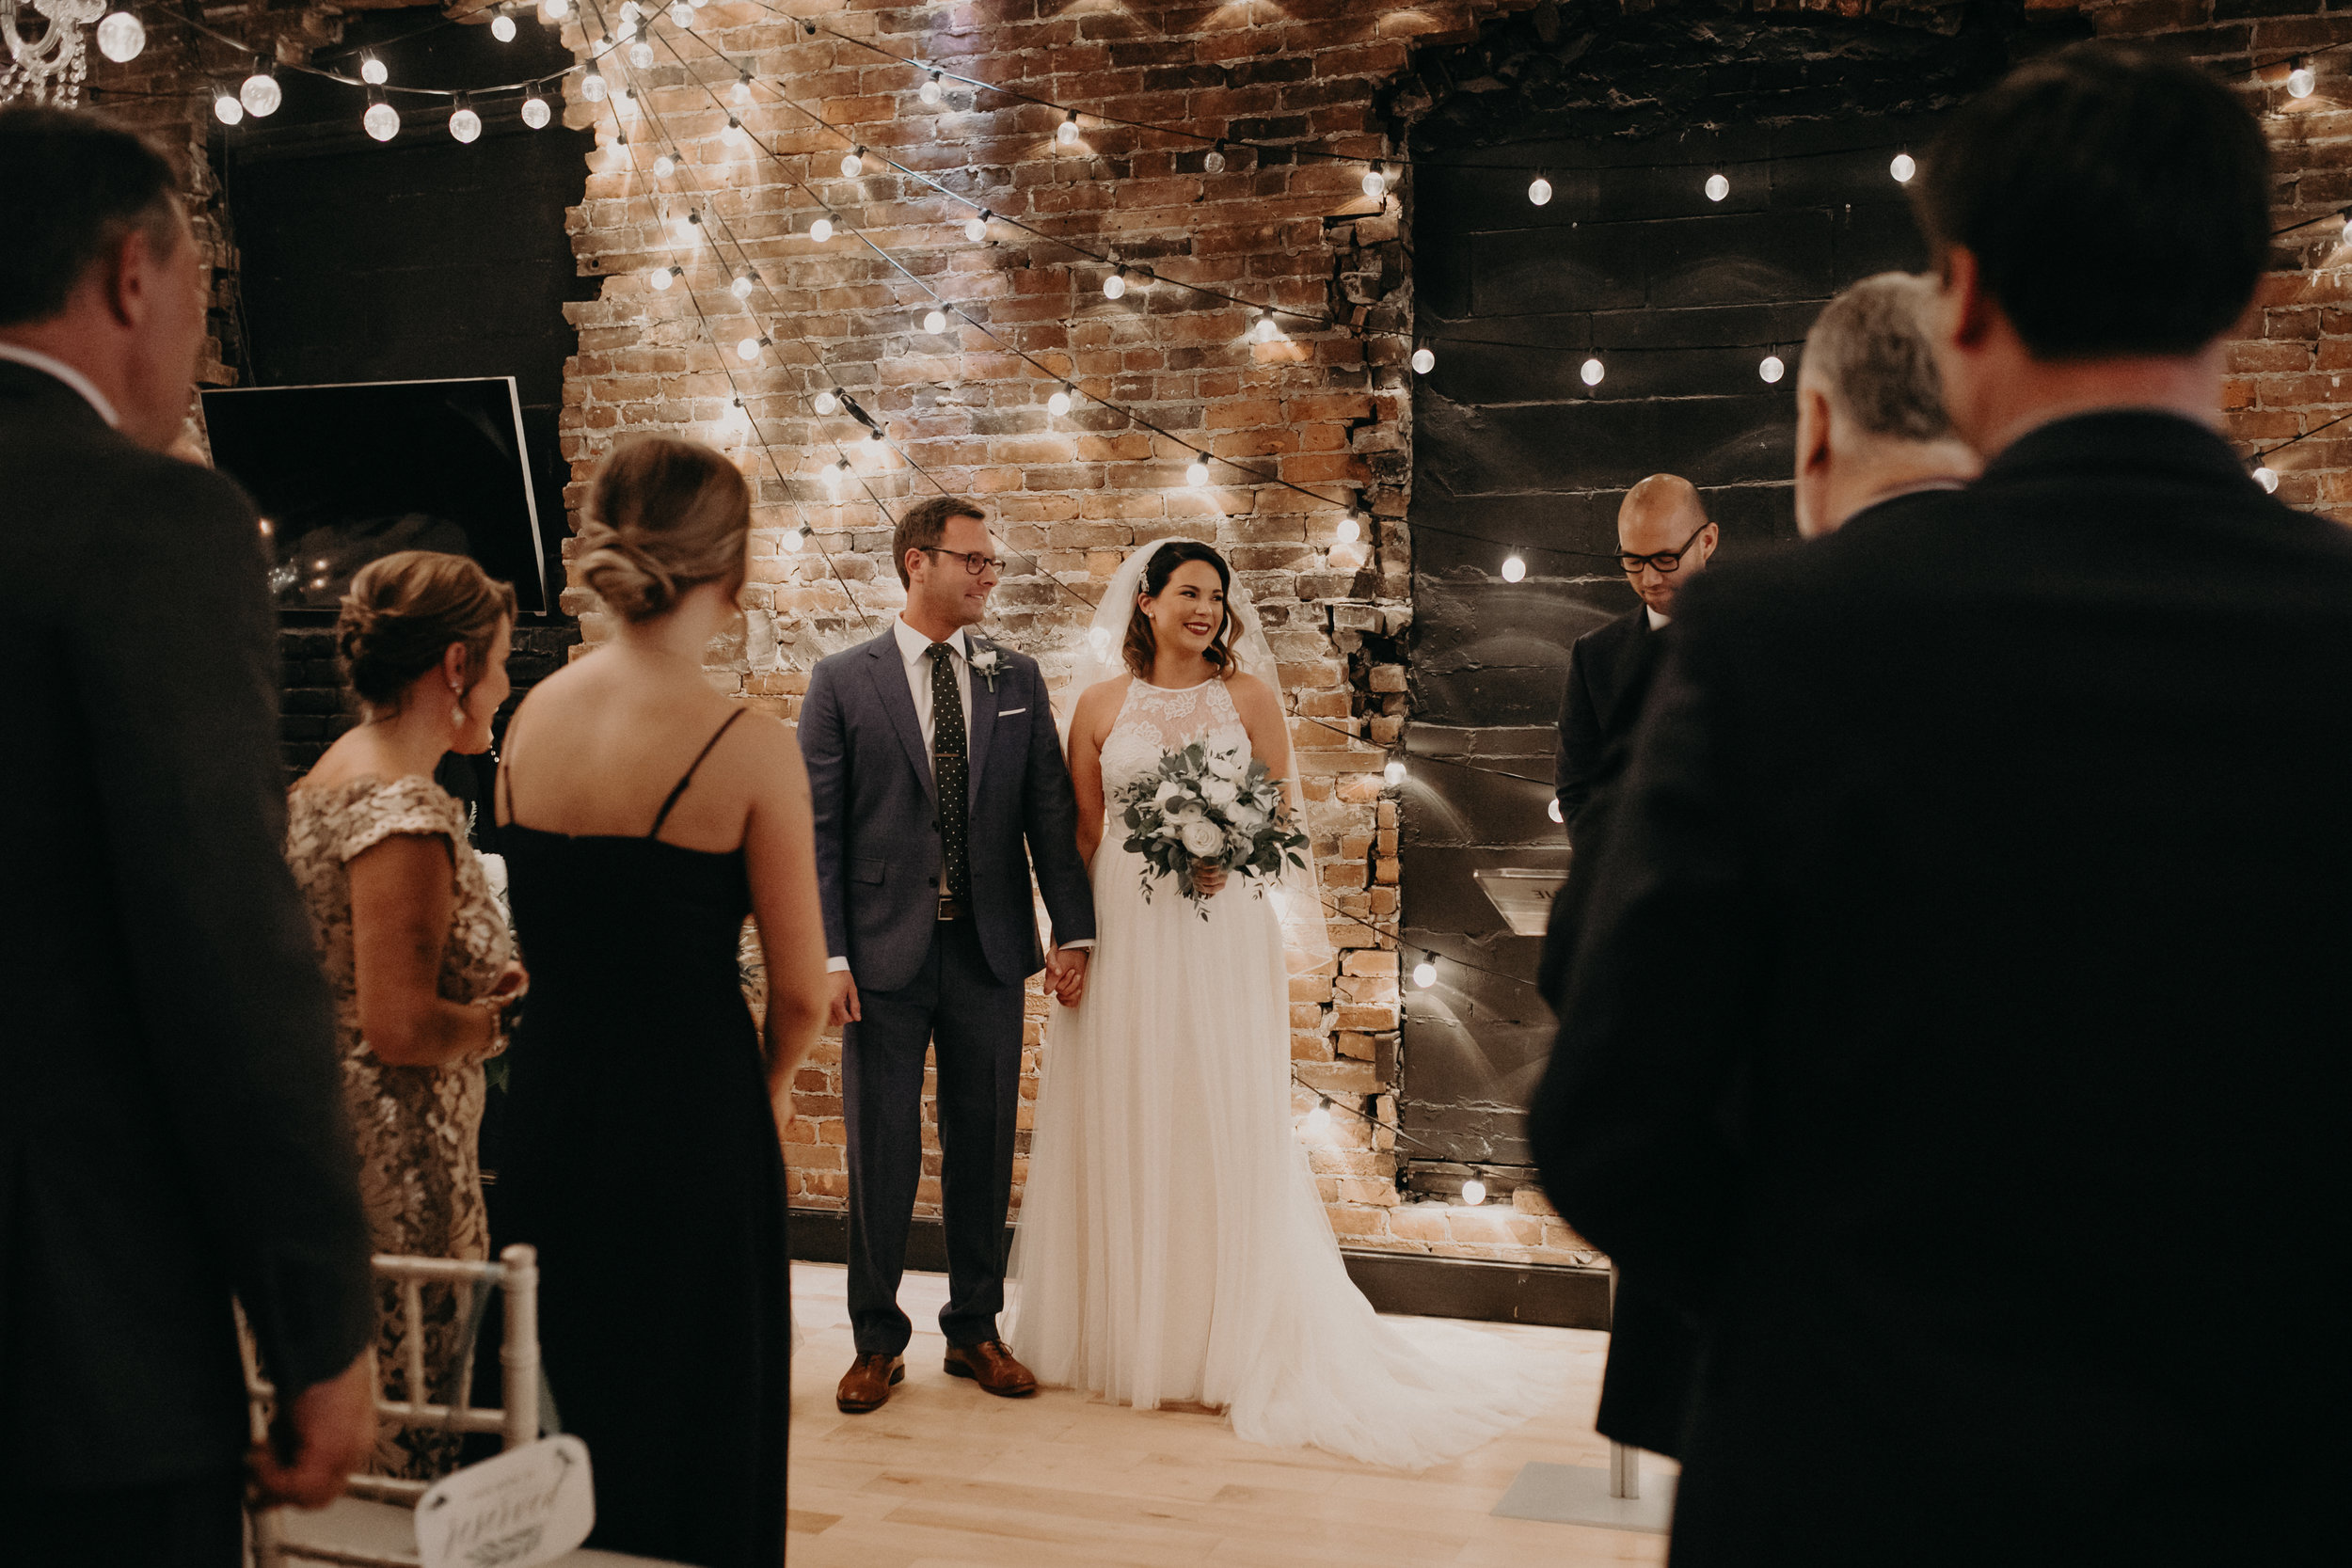 The Loft at Studio J has unique exposed brick backdrop and dim lighting for a wedding ceremony in Stillwater MN